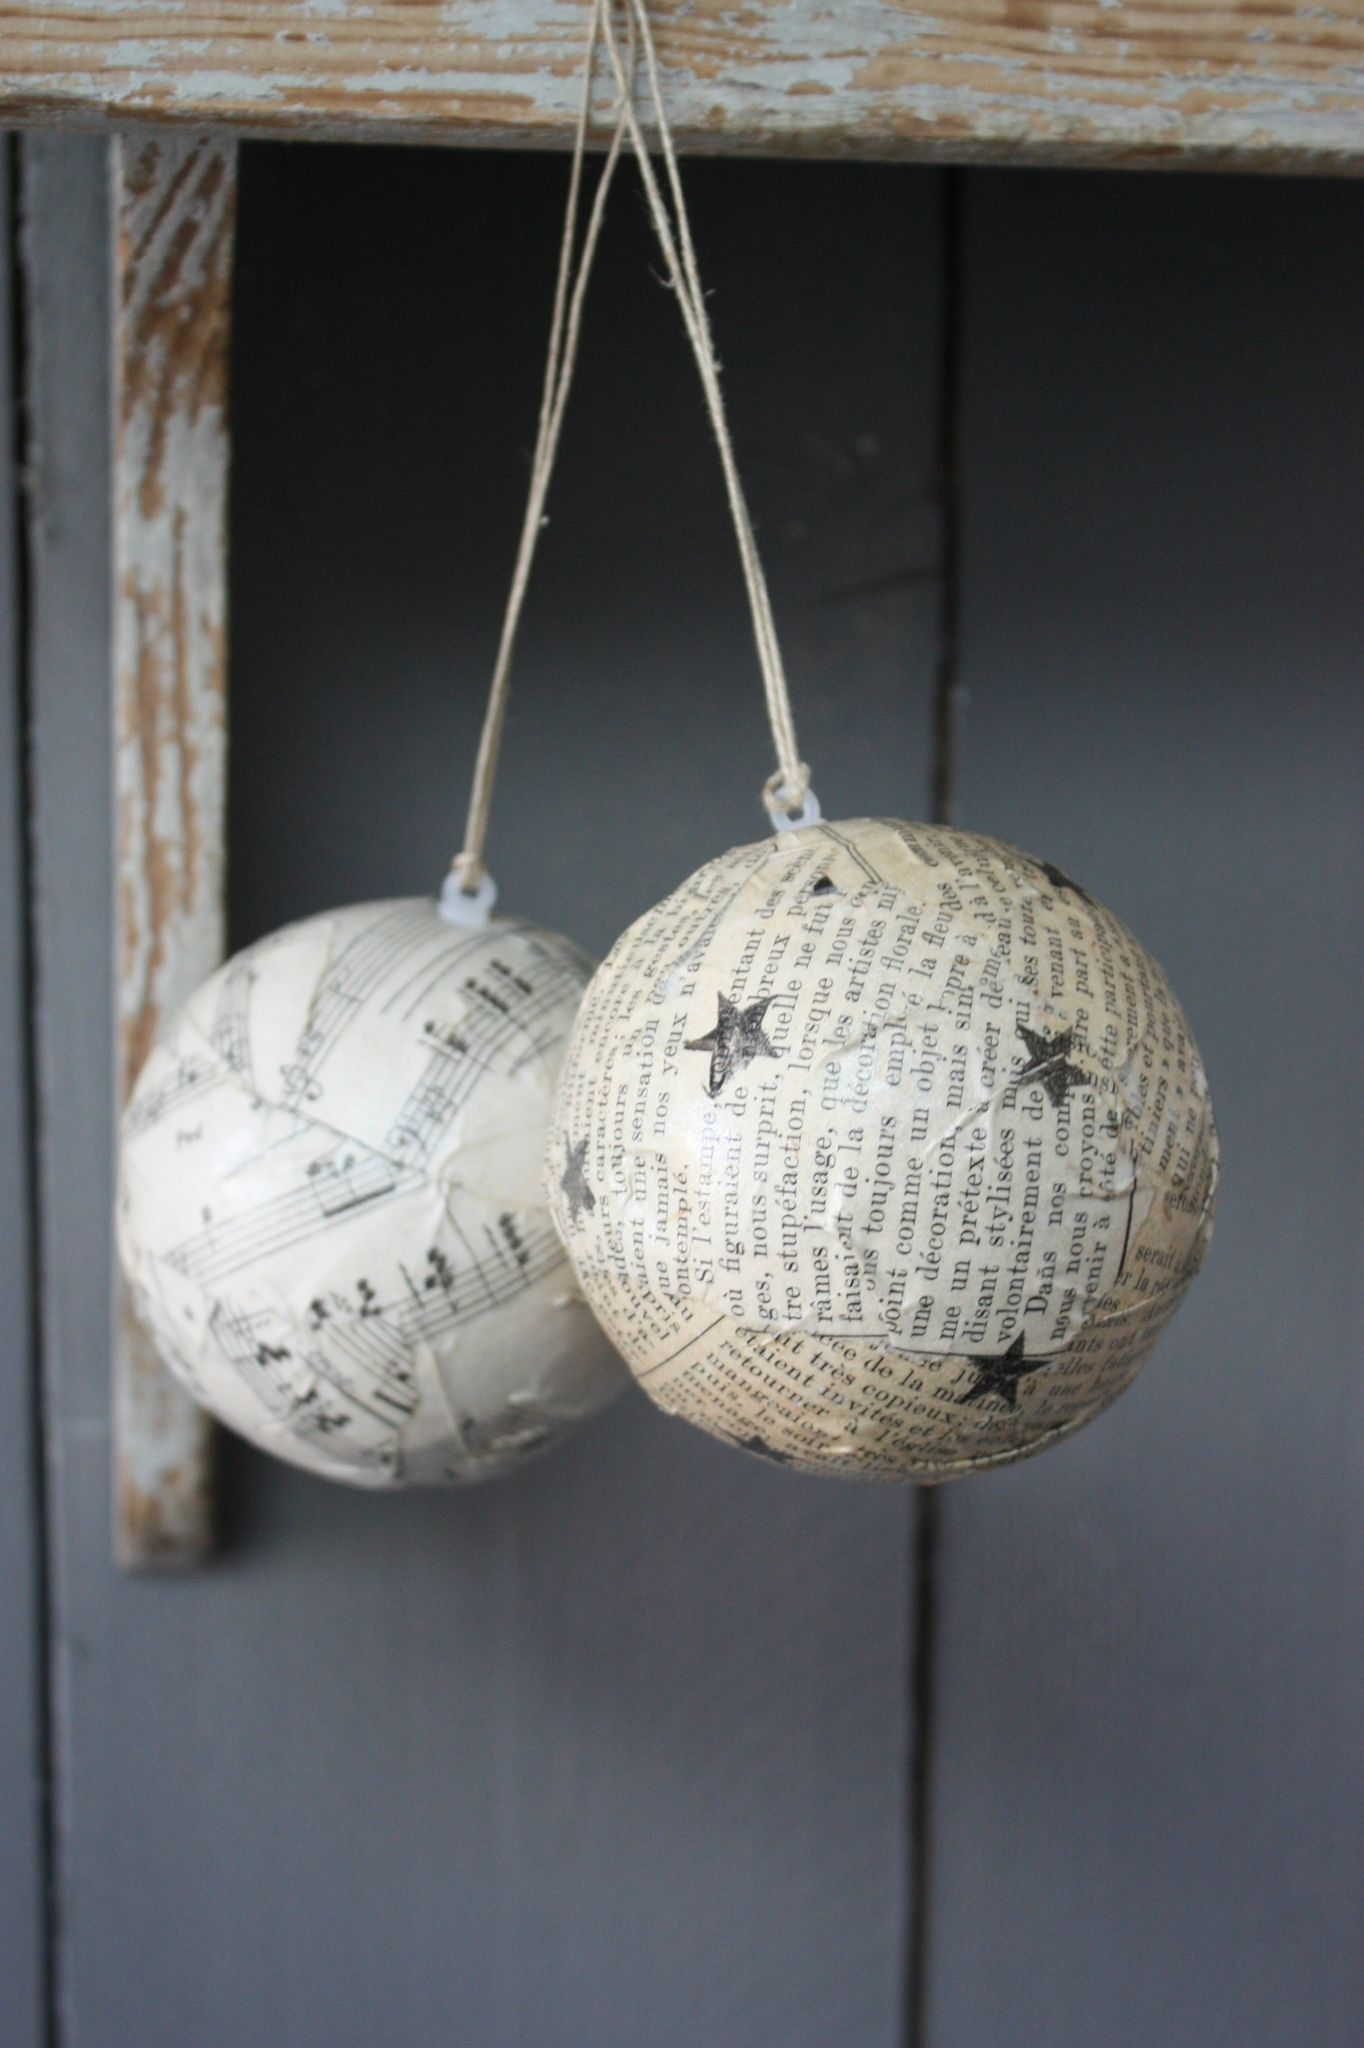 DIY Christmas ornaments like the idea of using old music